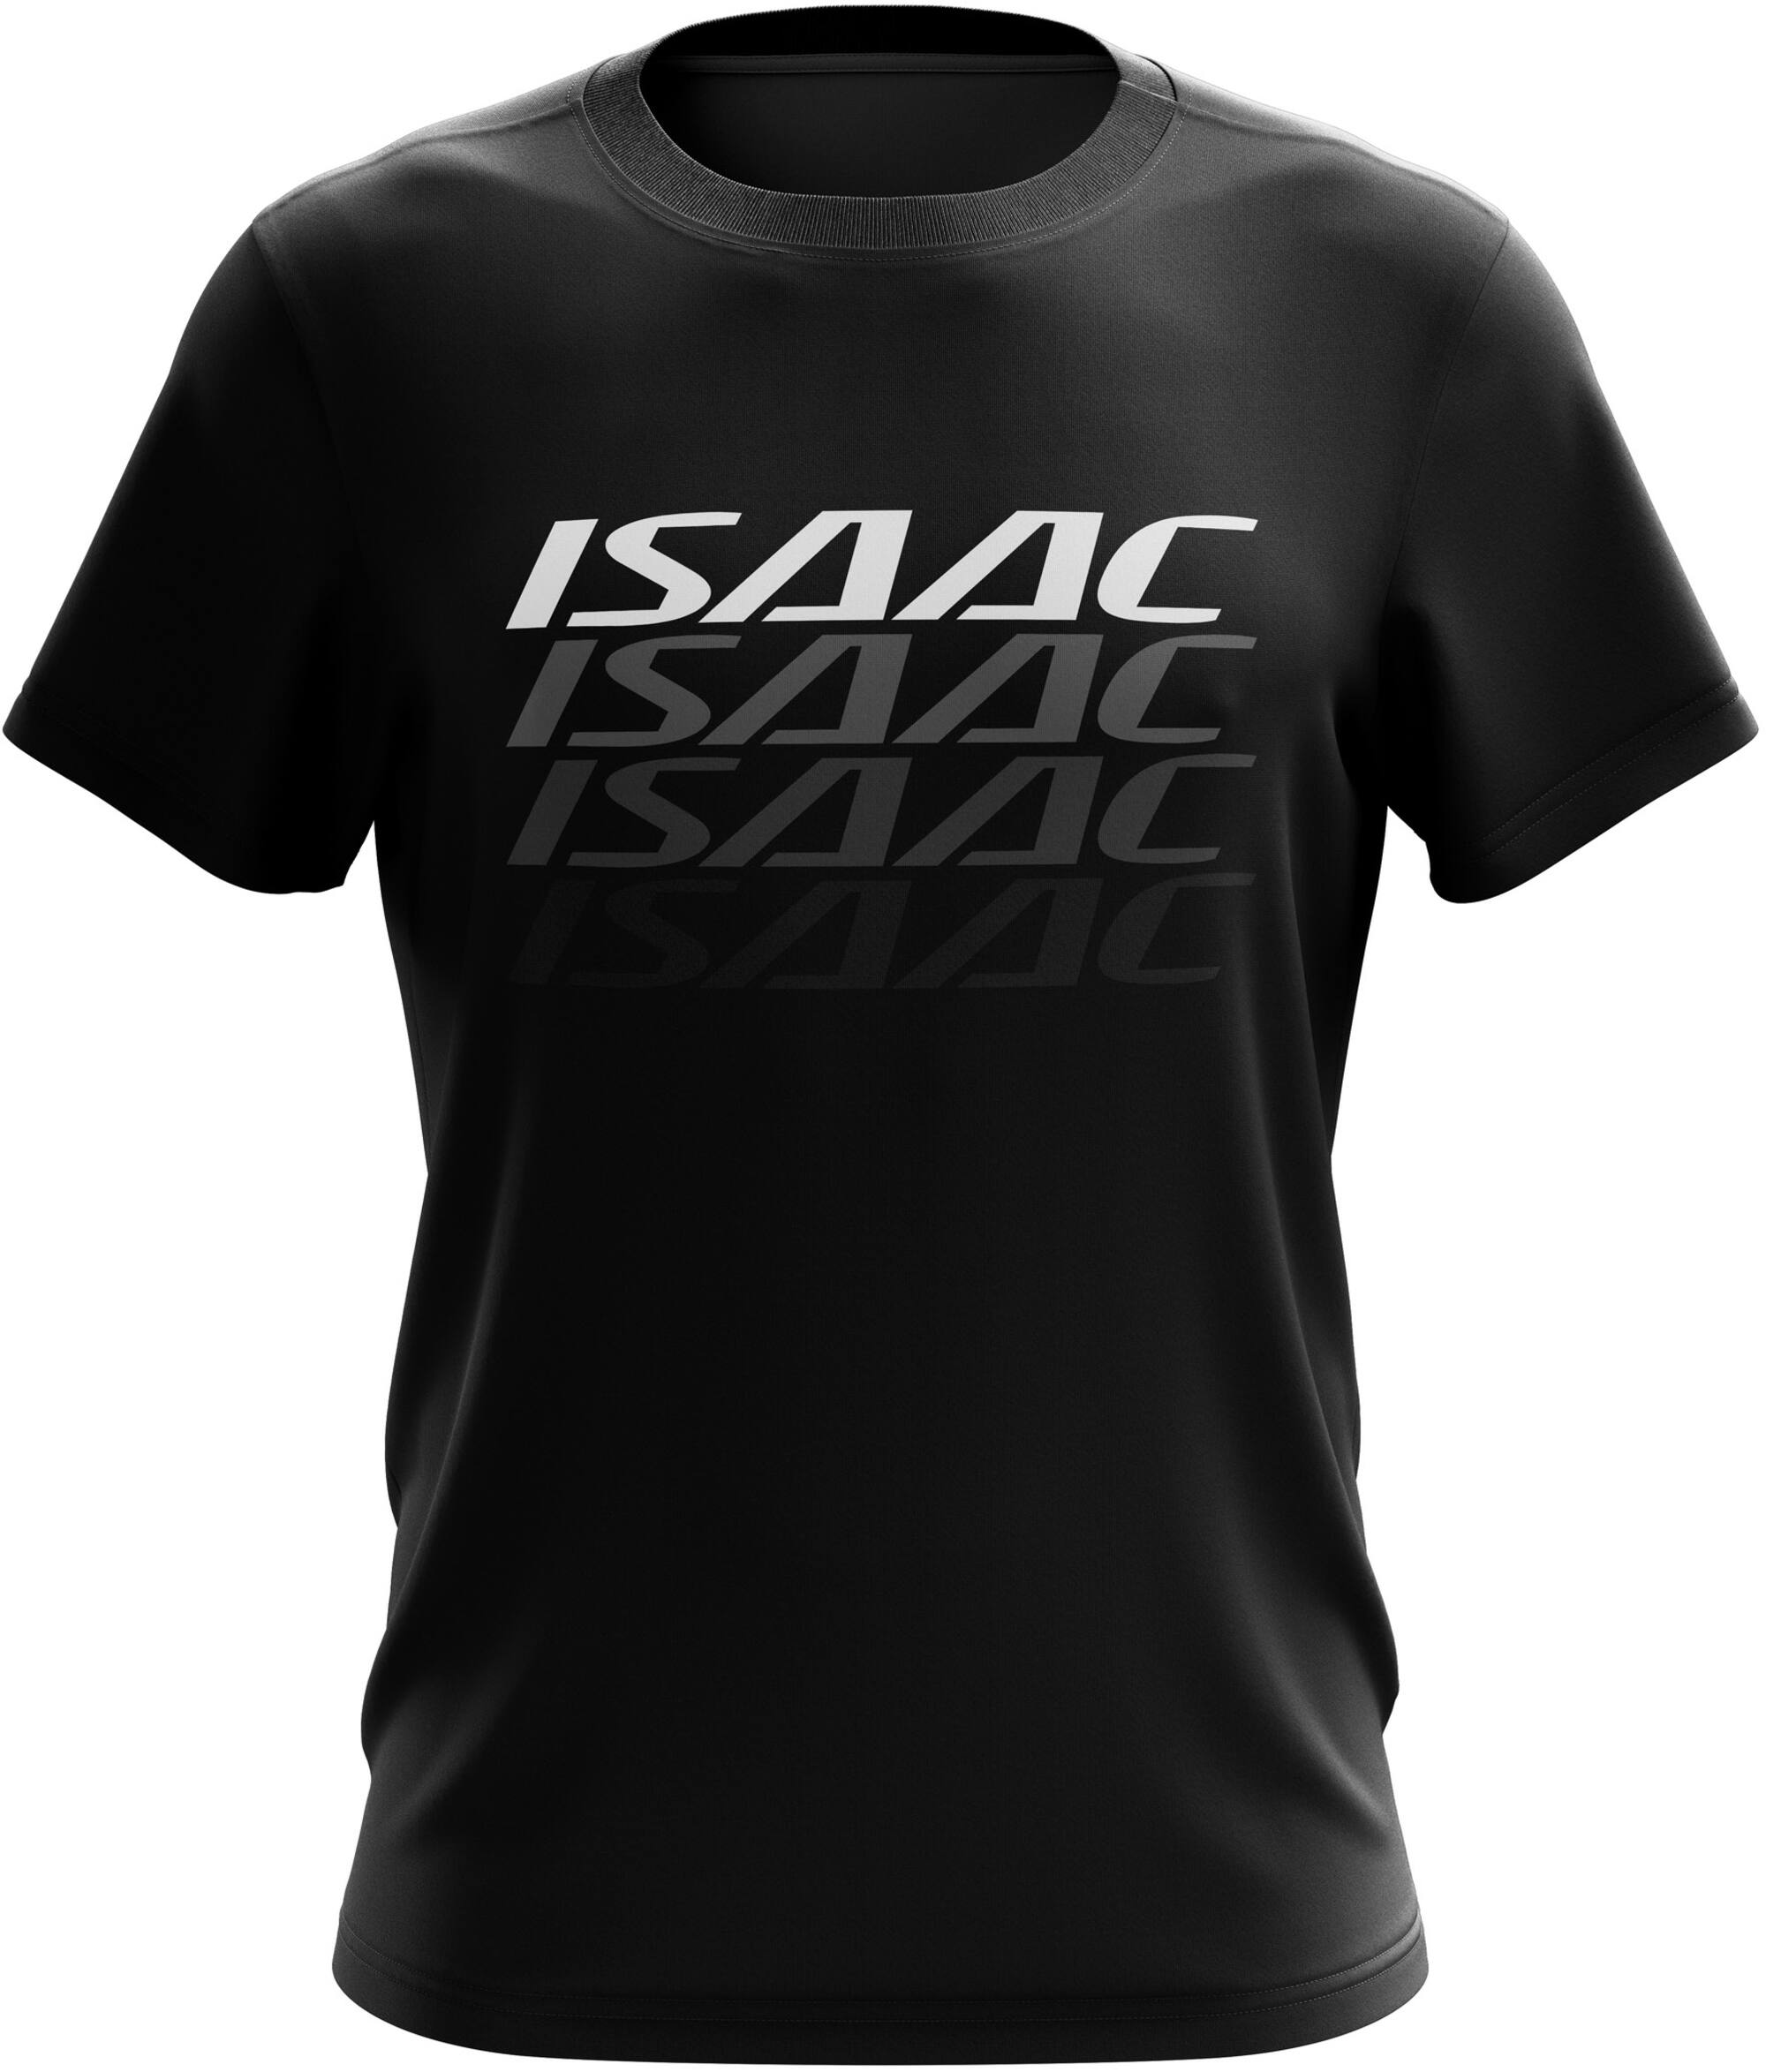 ISAAC T-SHIRT CASUAL SIZE M